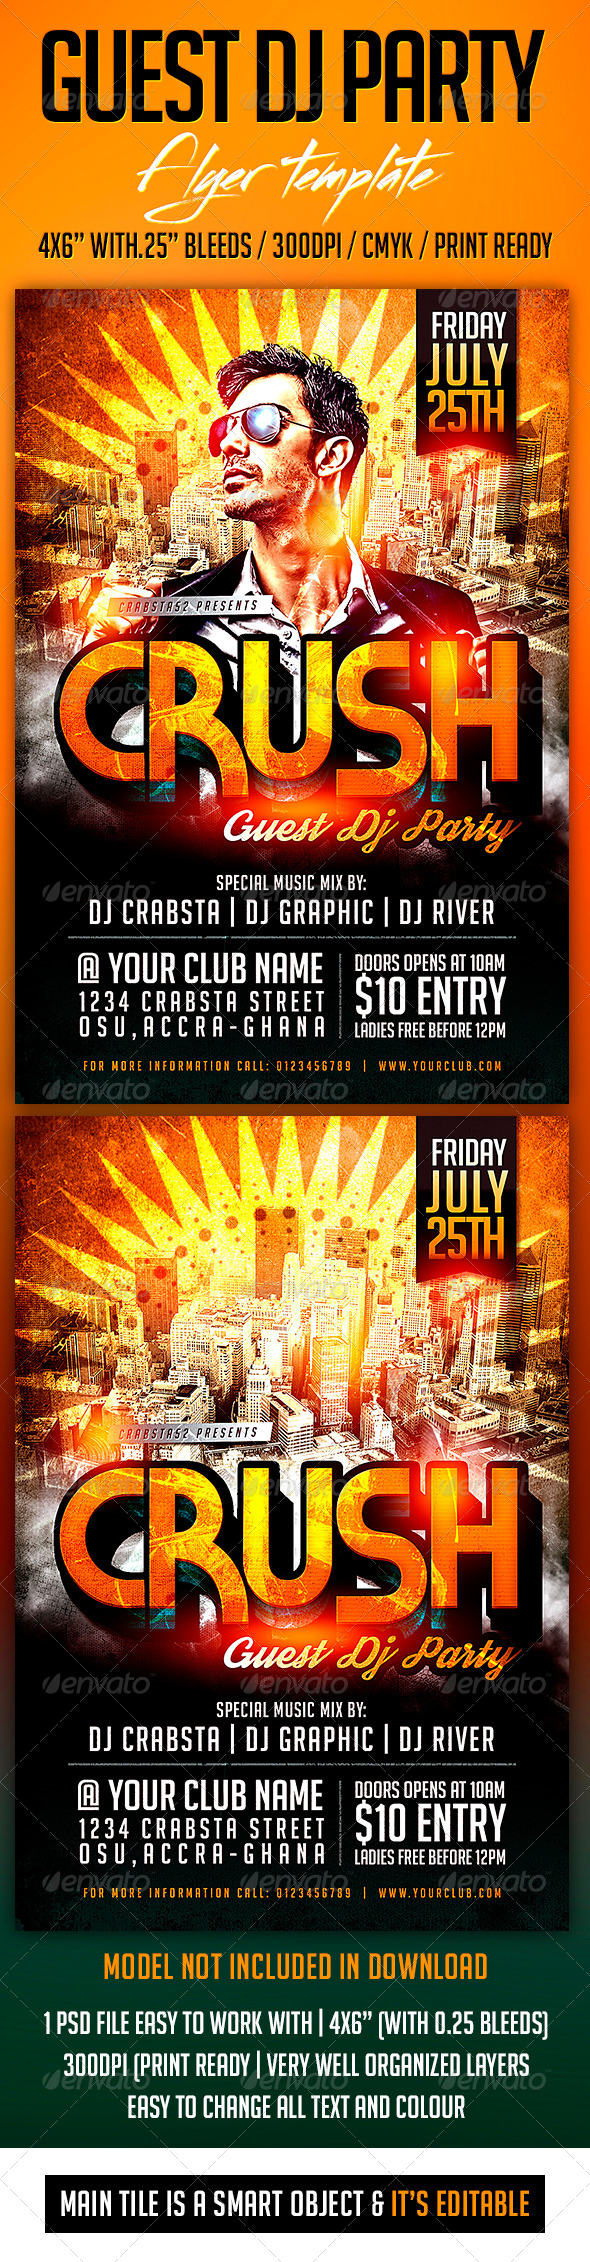 Guest Dj Party Flyer Template PSD Buy And Download Http - Buy flyer templates